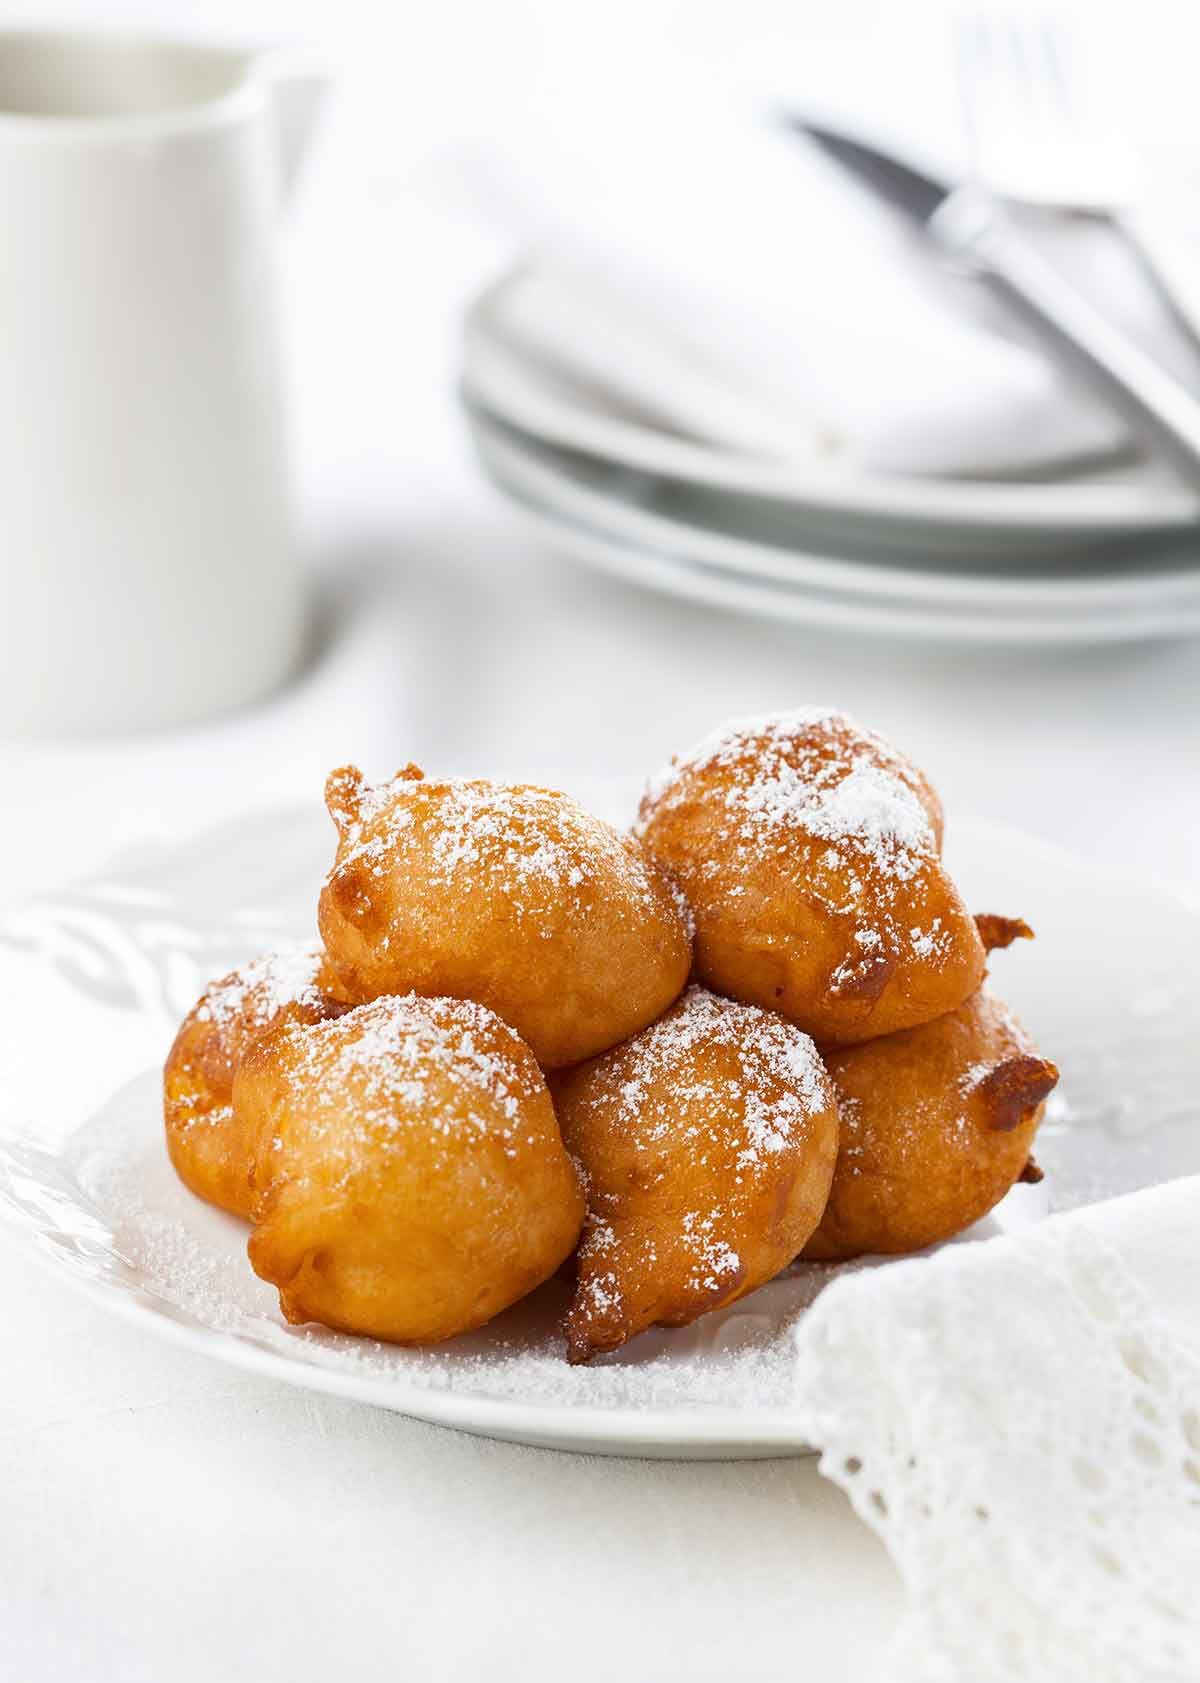 A pile of ricotta-sweet potato beignets dusted with confectioners' sugar on a white plate.